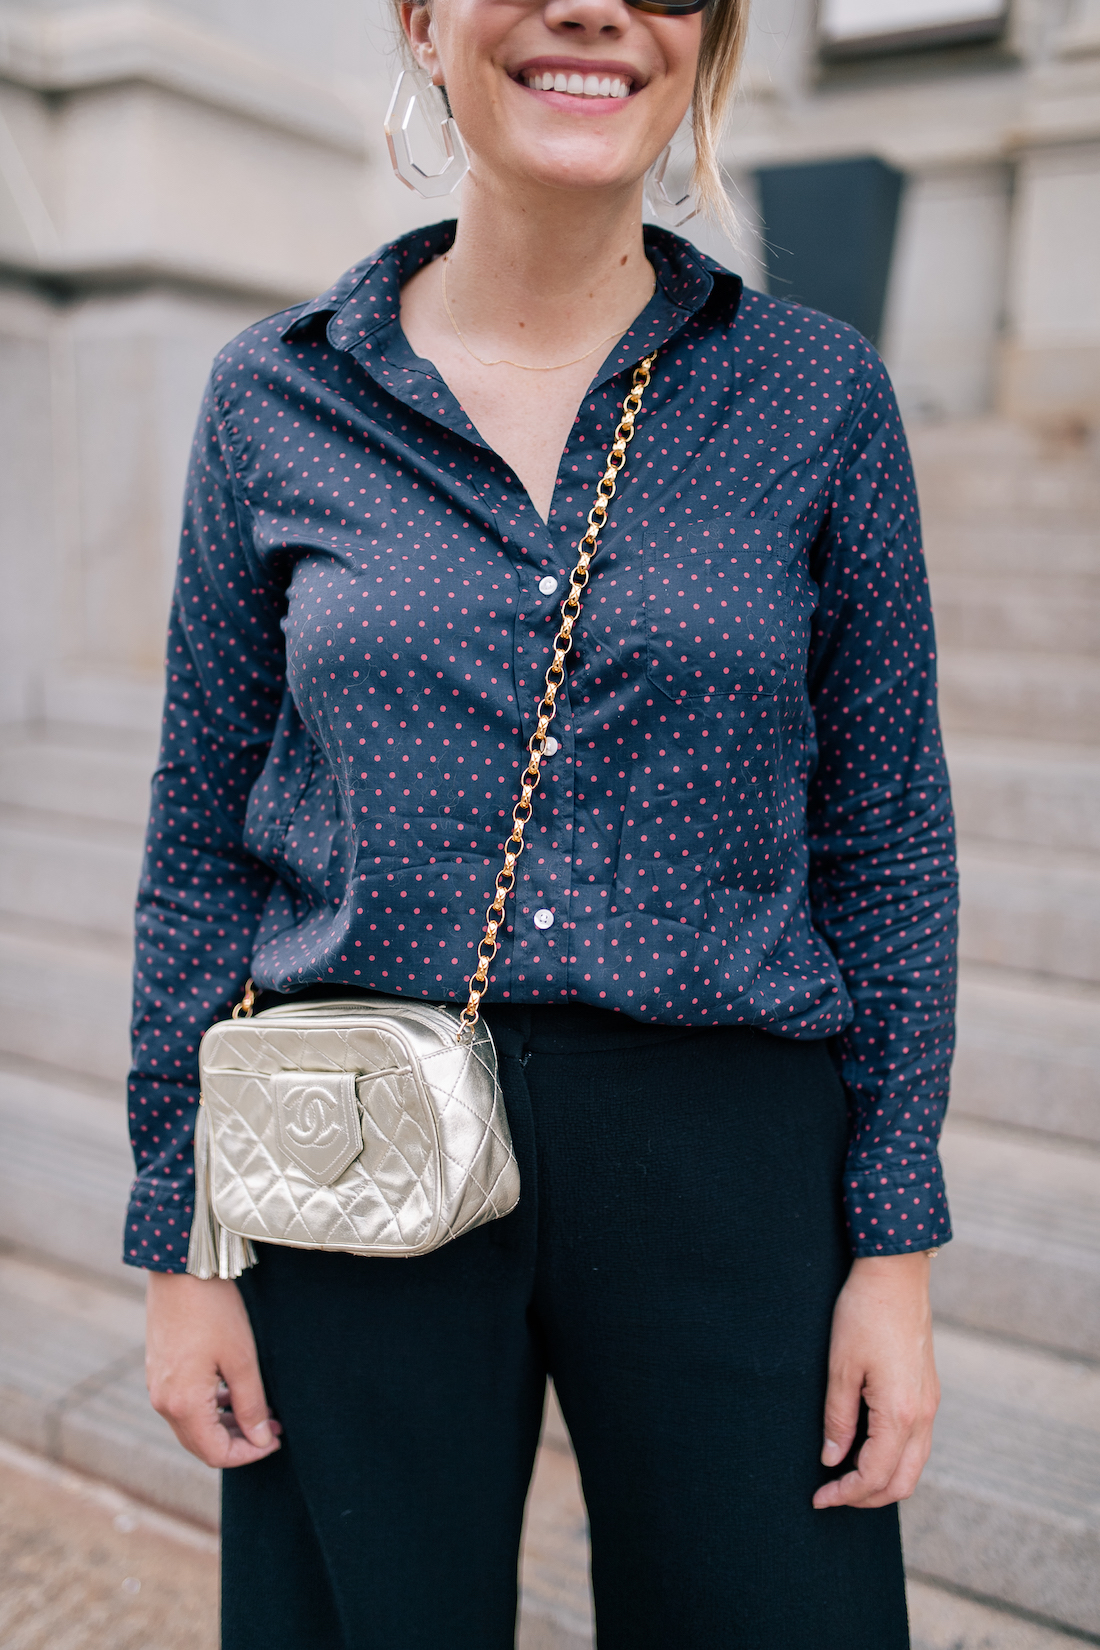 the best fitting shirt in polka dots